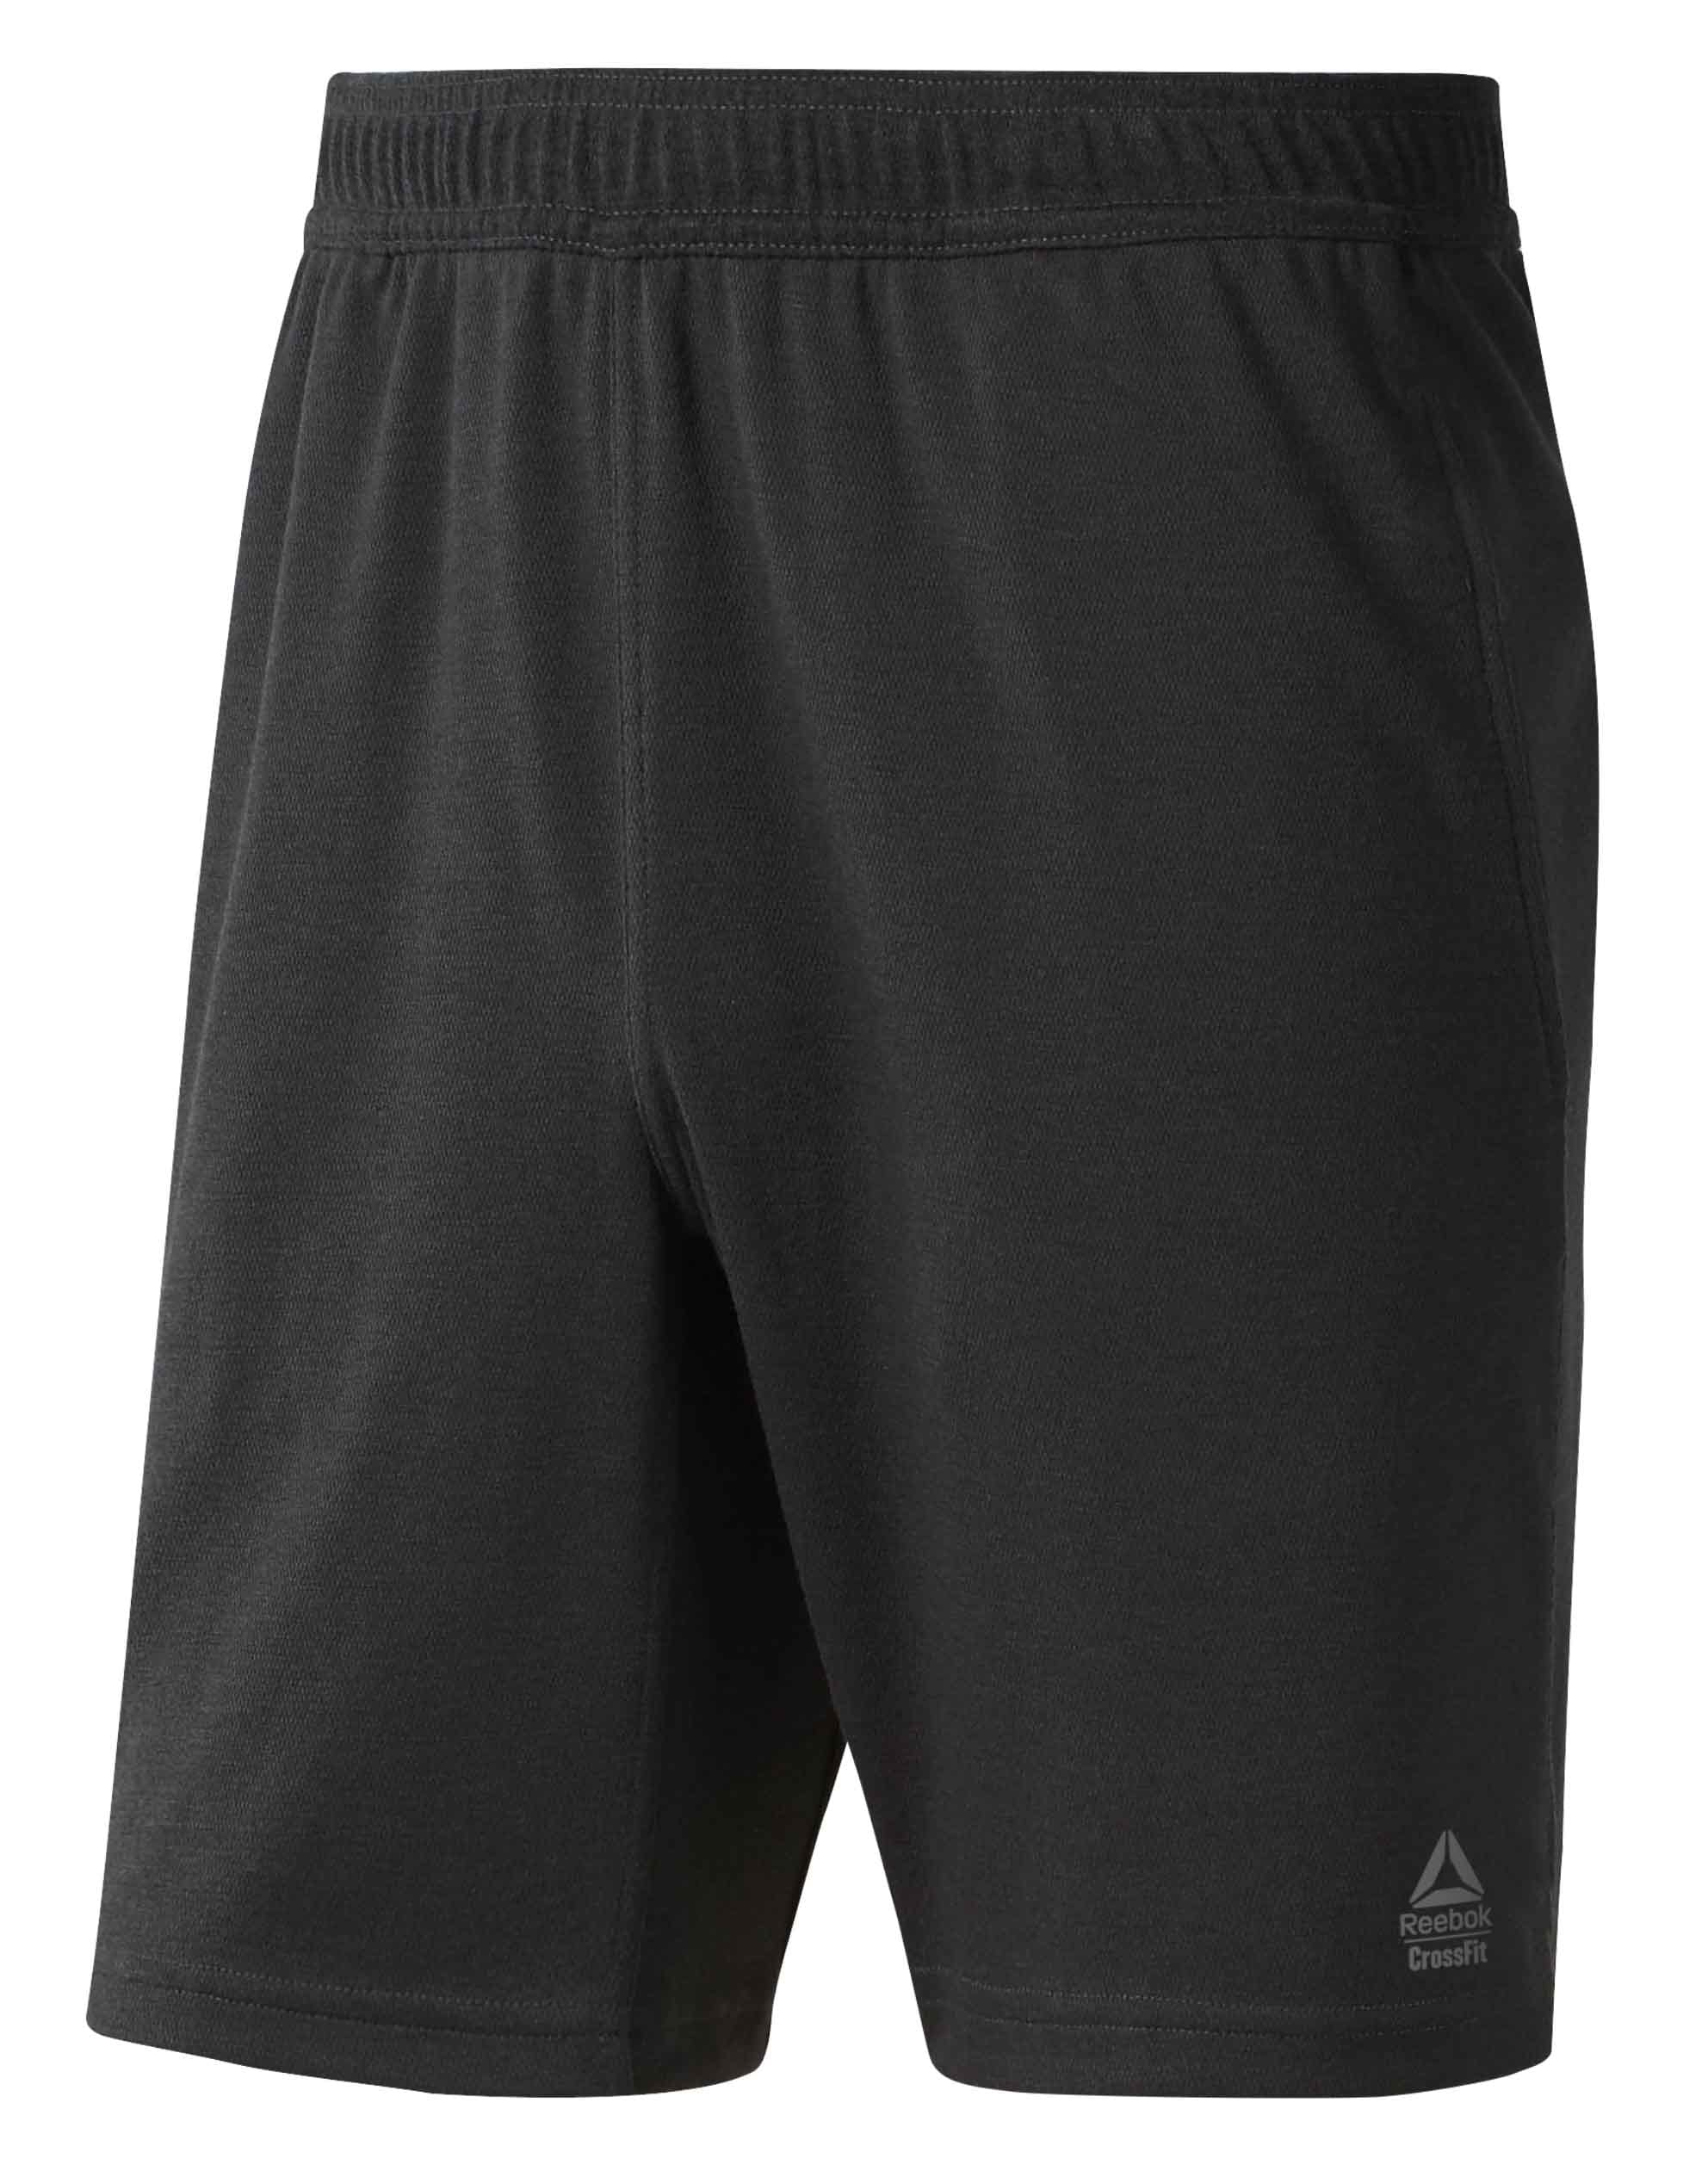 crossfit-shorts-speedwick